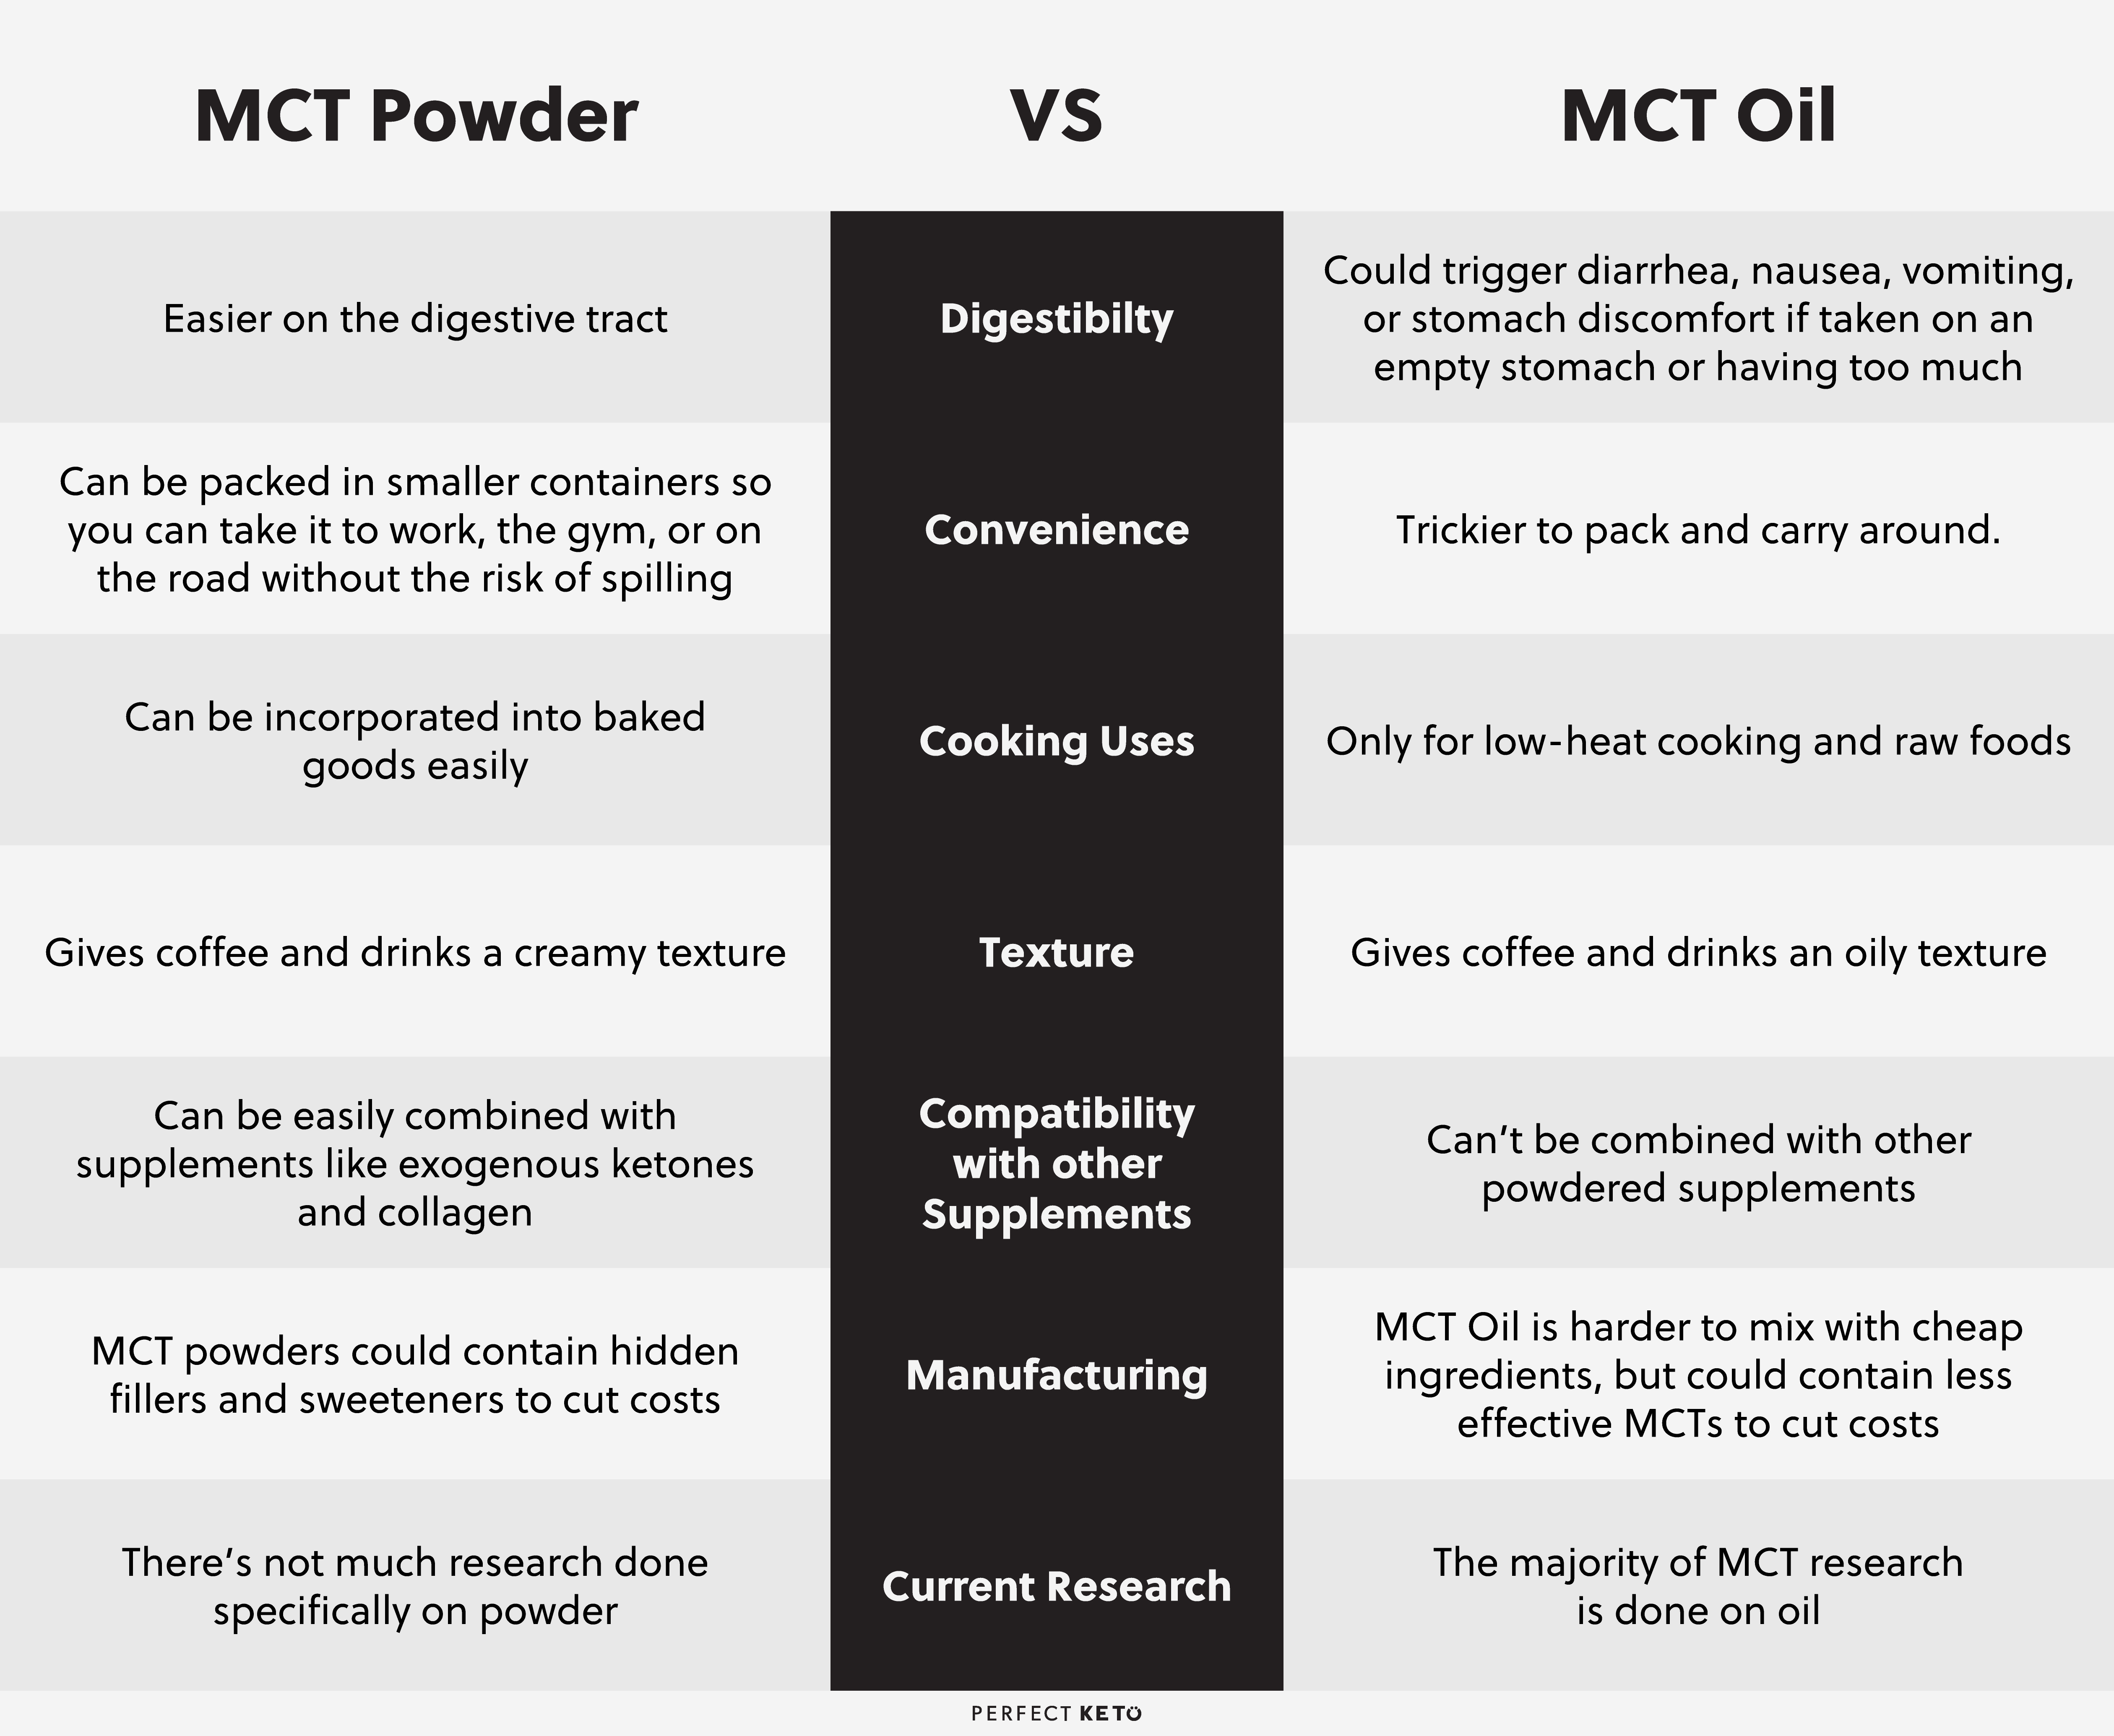 mct-powder-vs-mct-oil.jpg